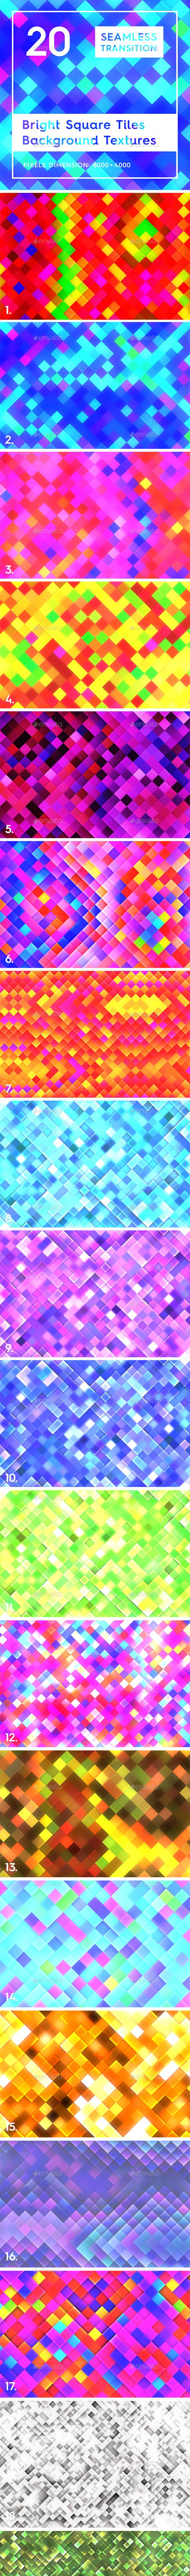 20 Bright Square Tiles Backgrounds - 3DOcean Item for Sale